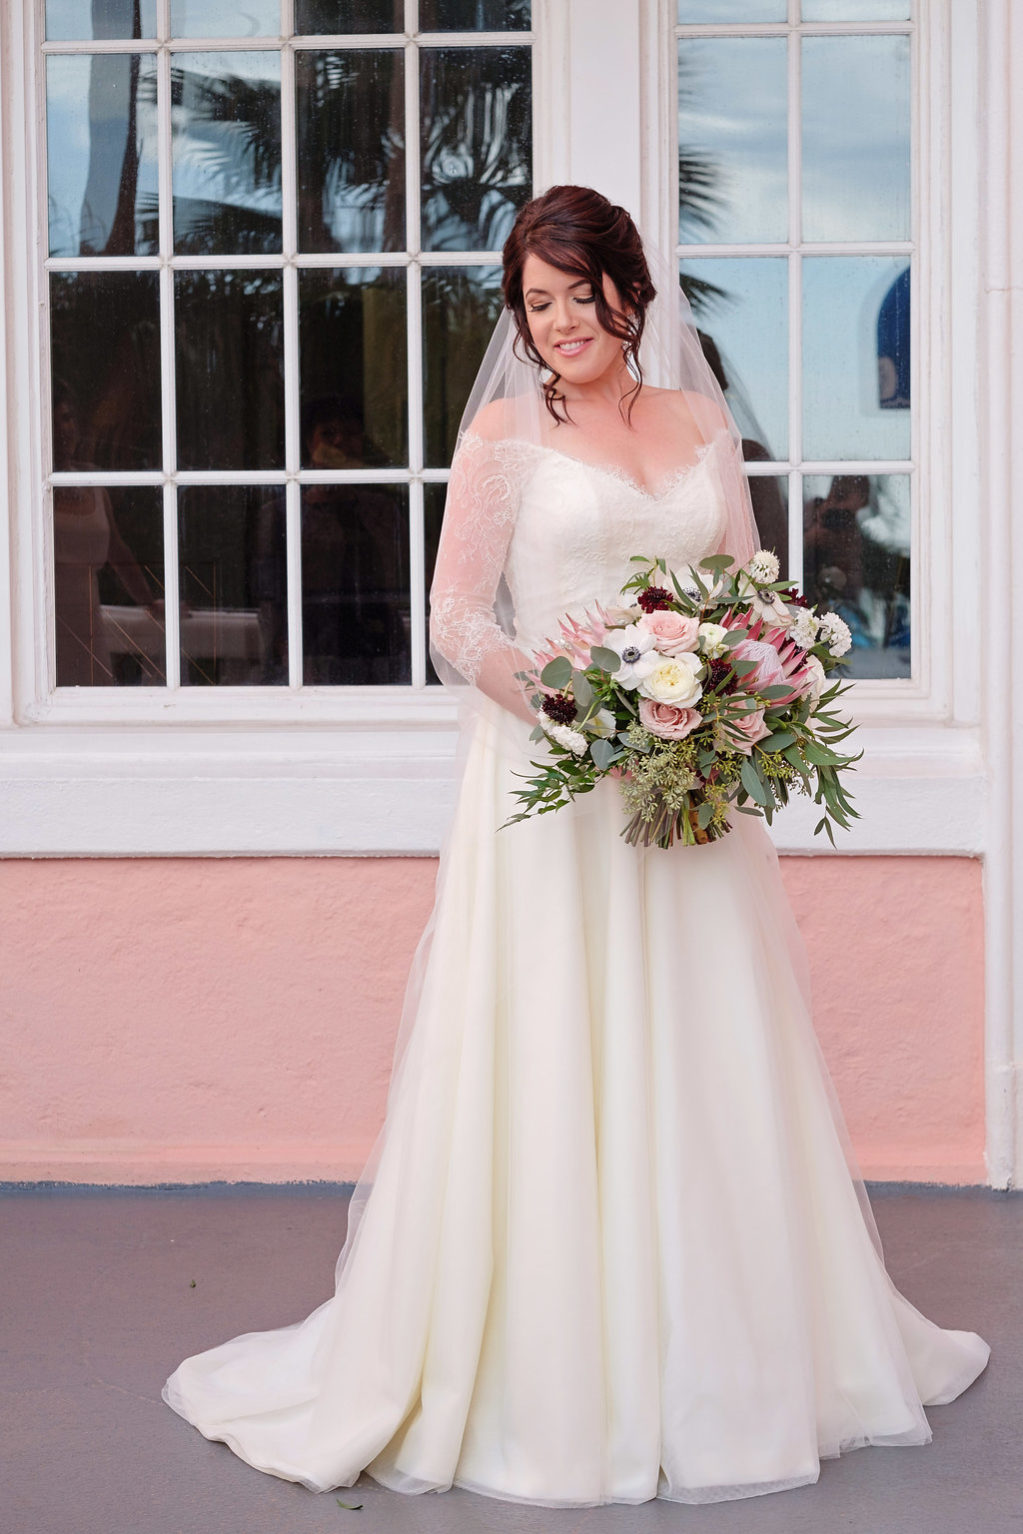 Outdoor Bridal Portrait in Lace Sleeve Wedding Dress with Blush Pink, White, and Burgundy Bouquet with Greenery   Tampa Bay Wedding Hair and Makeup Femme Akoi Beauty Studio   St Pete Photographer Marc Edwards Photographs